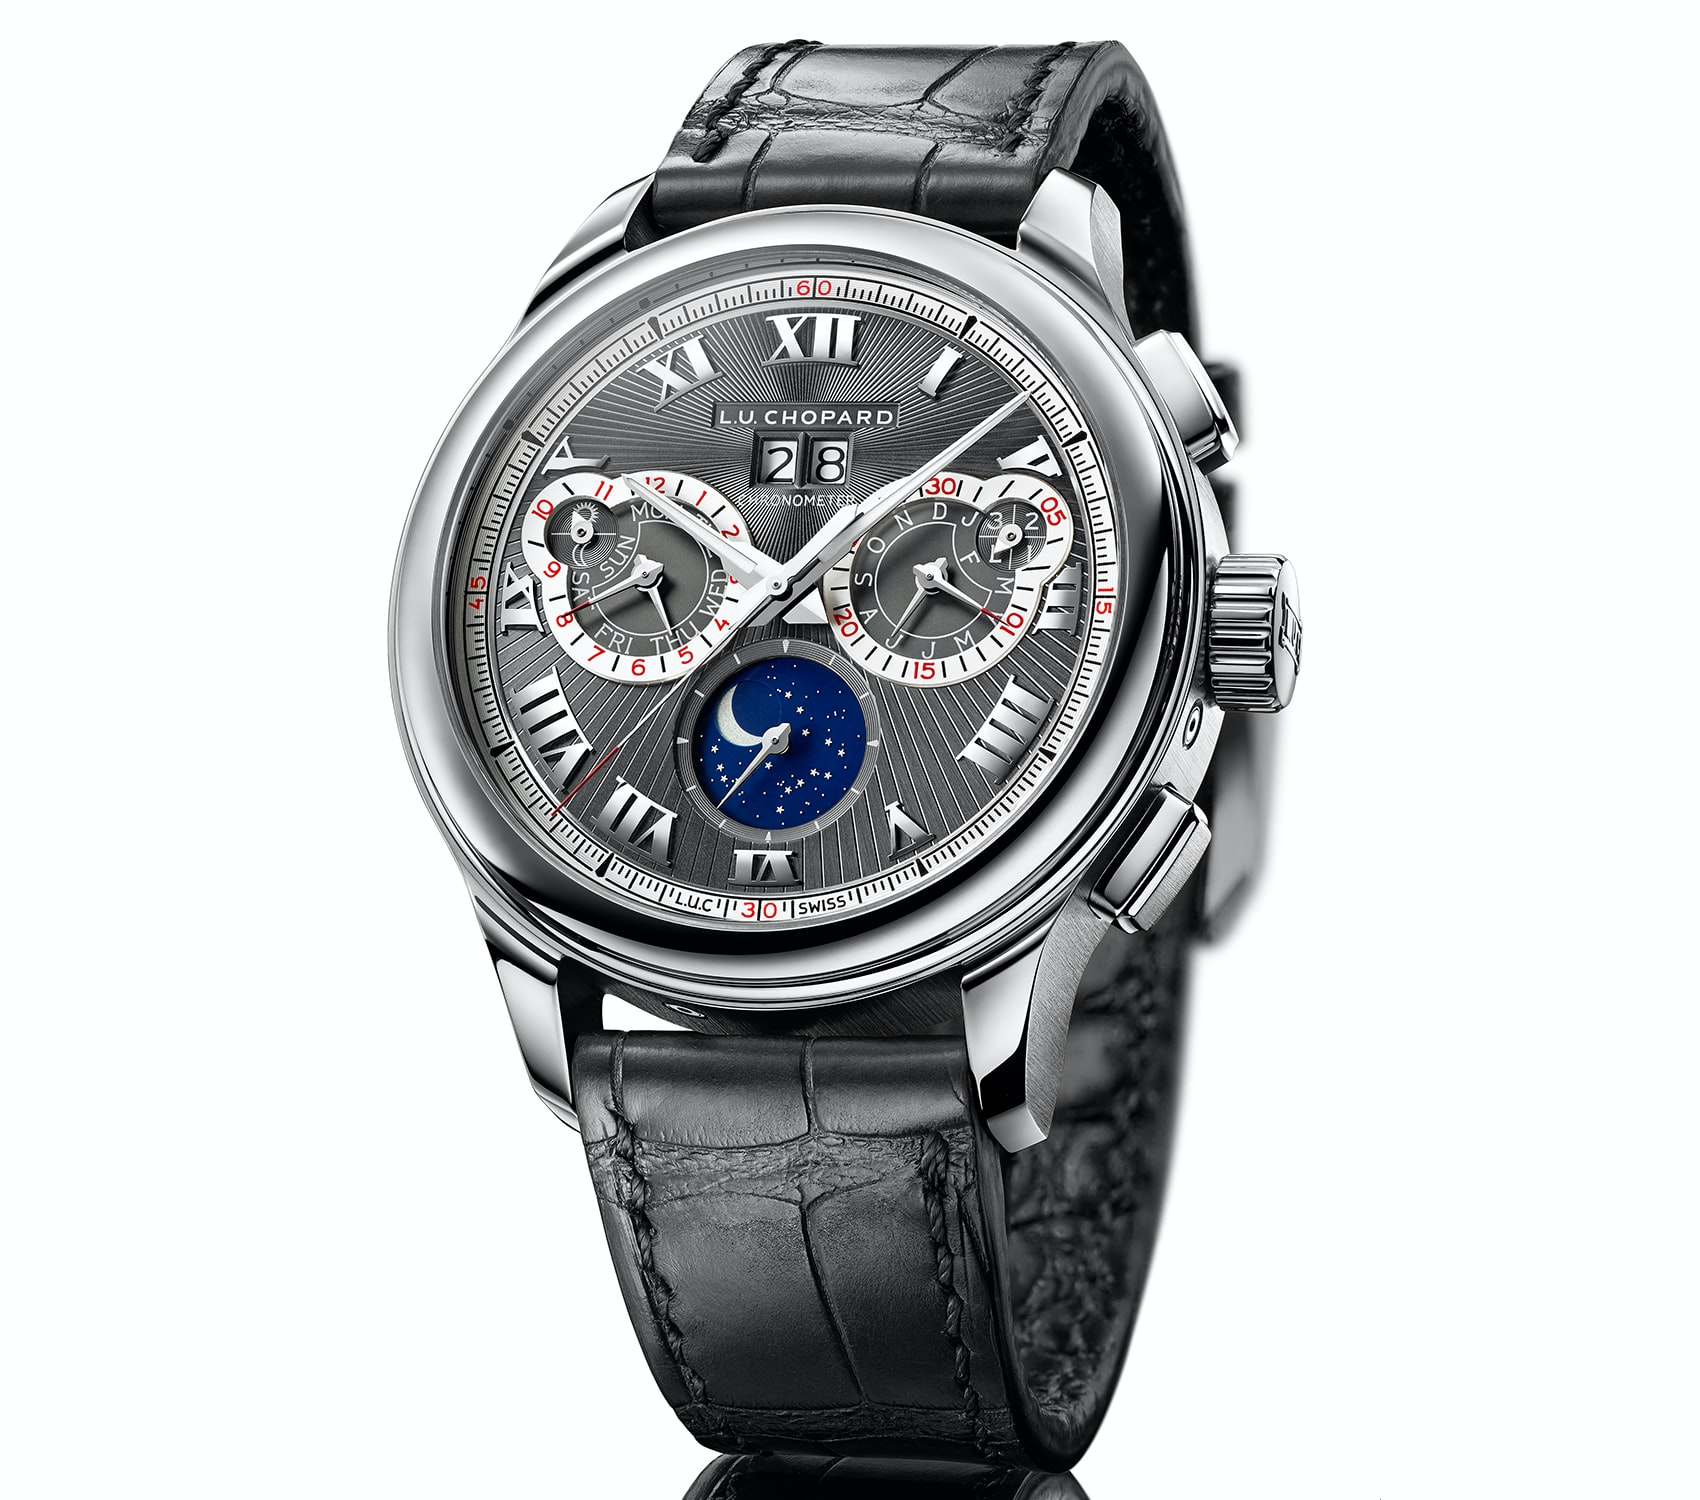 Introducing: The Chopard L.U.C. Perpetual Chrono